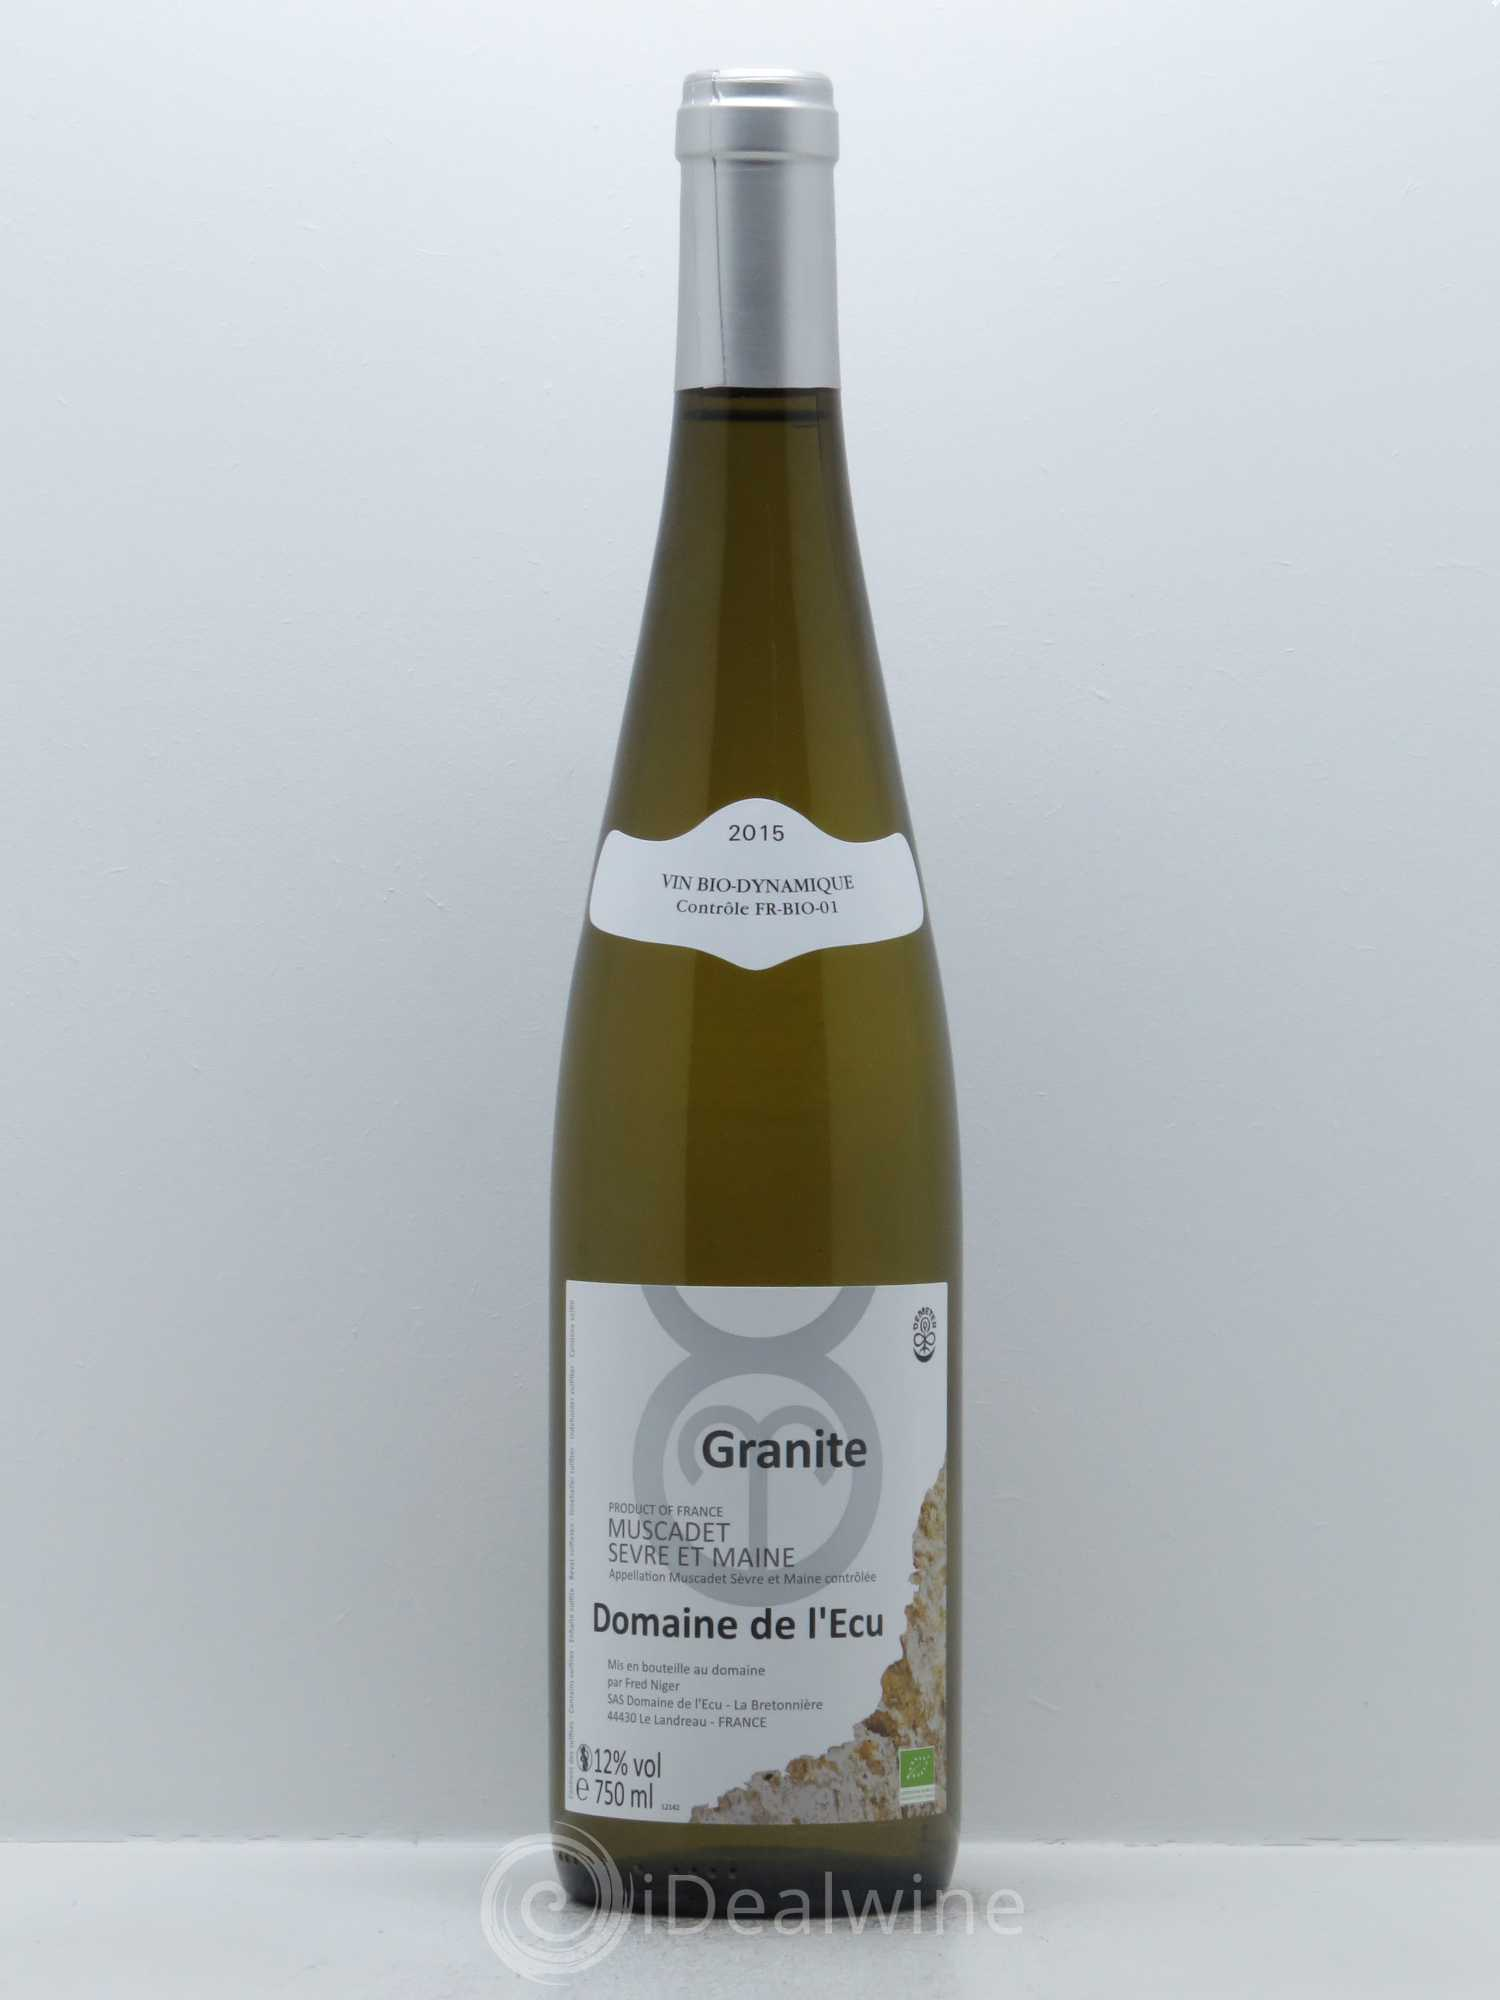 Muscadet-Sèvre-et-Maine Expression de Granite L'Ecu (Domaine de)  2015 - Lot of 1 Bottle